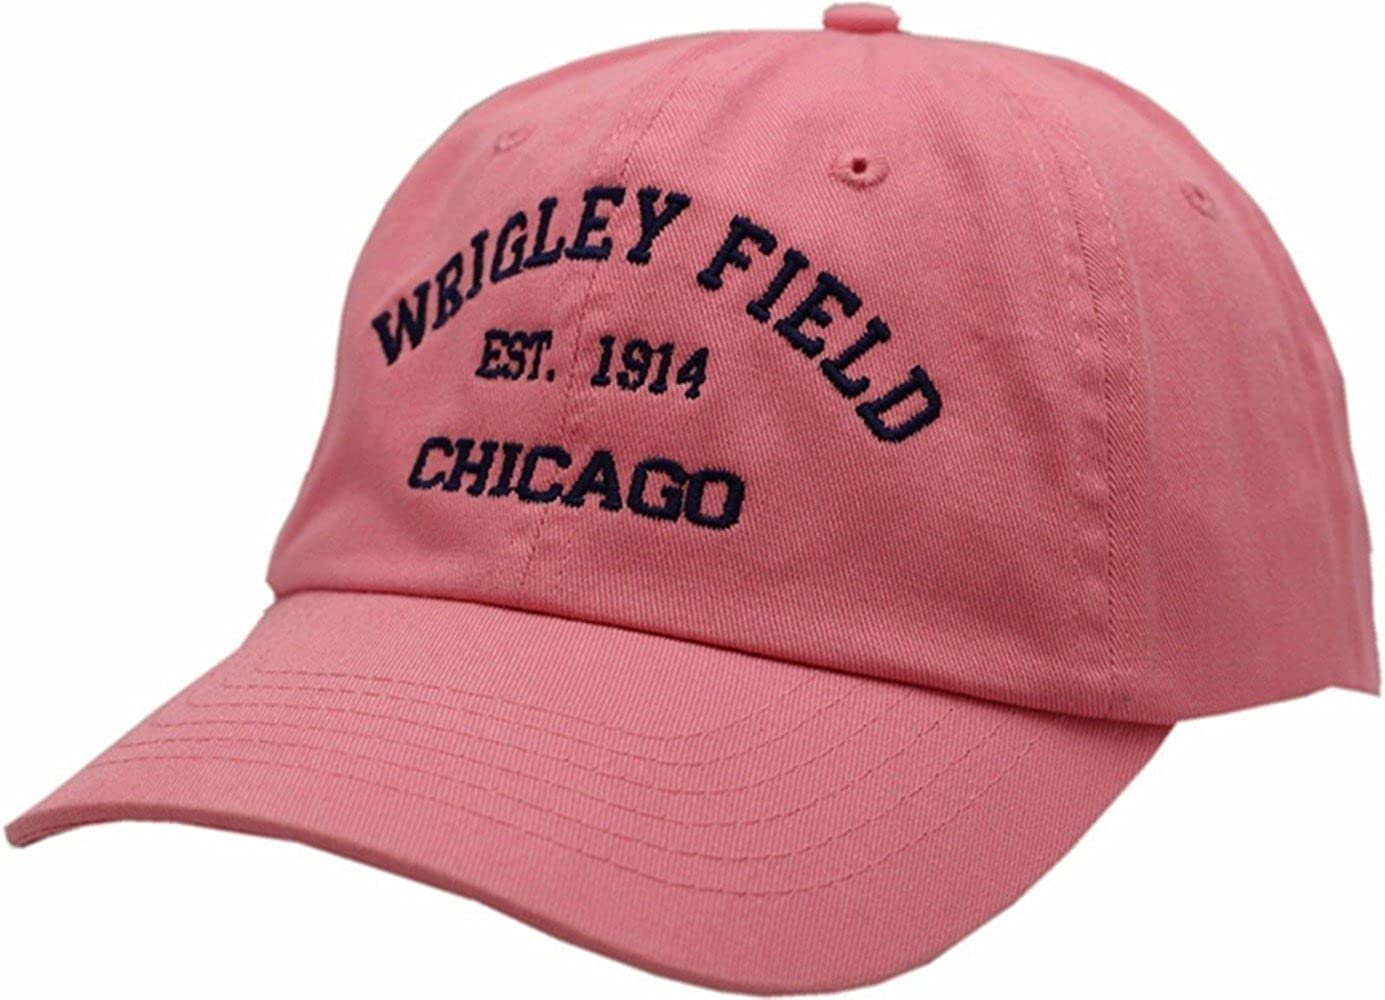 241d4b9b3694c Peerless Embroidery Company Wrigley Field EST 1914 Hat Buckle Back Pink at  Amazon Women s Clothing store